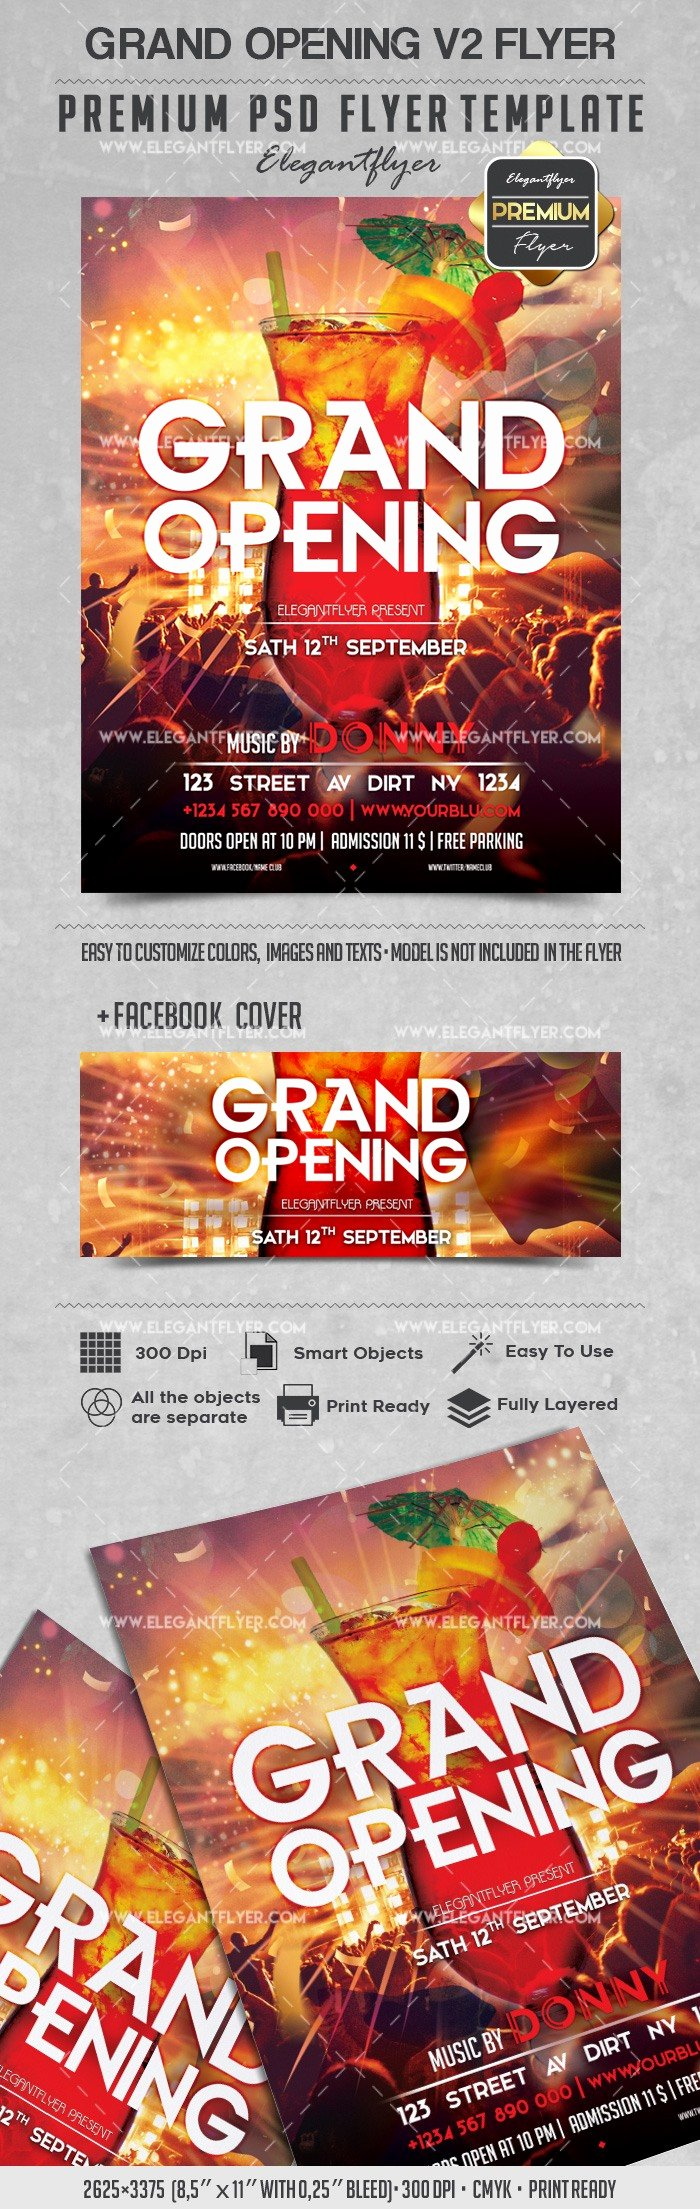 Grand Opening Flyer Template Elegant Grand Opening V2 – Flyer Psd Template – by Elegantflyer